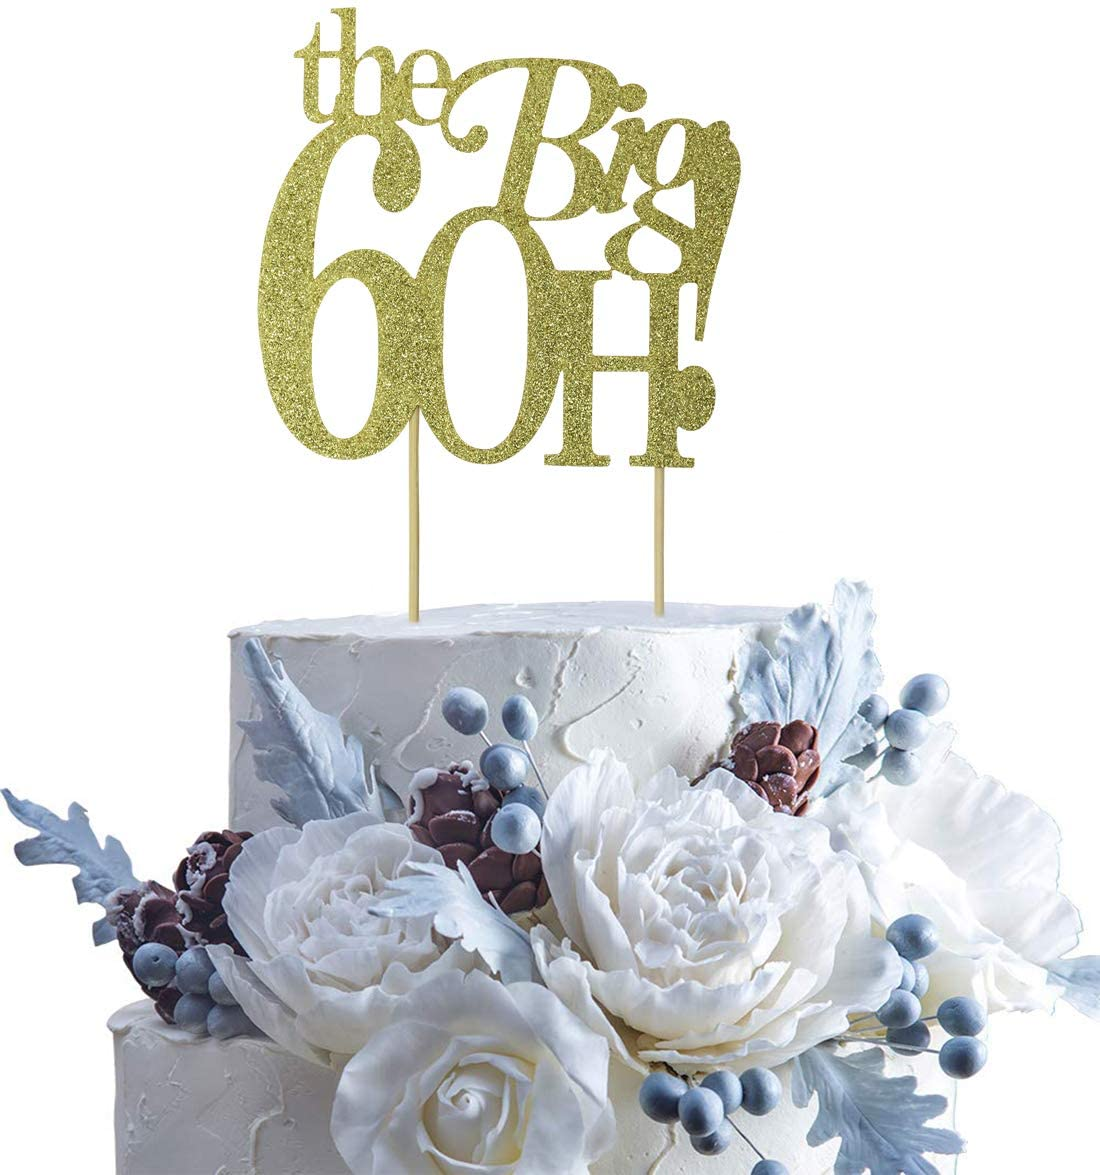 Guoguoxia Gold Glitter The Big 60H Cake Topper 60 & Fabulous Cake Topper - 60th Birthday Party Decoration Sign - Adult Birthday Party Supplies (Gold 60)